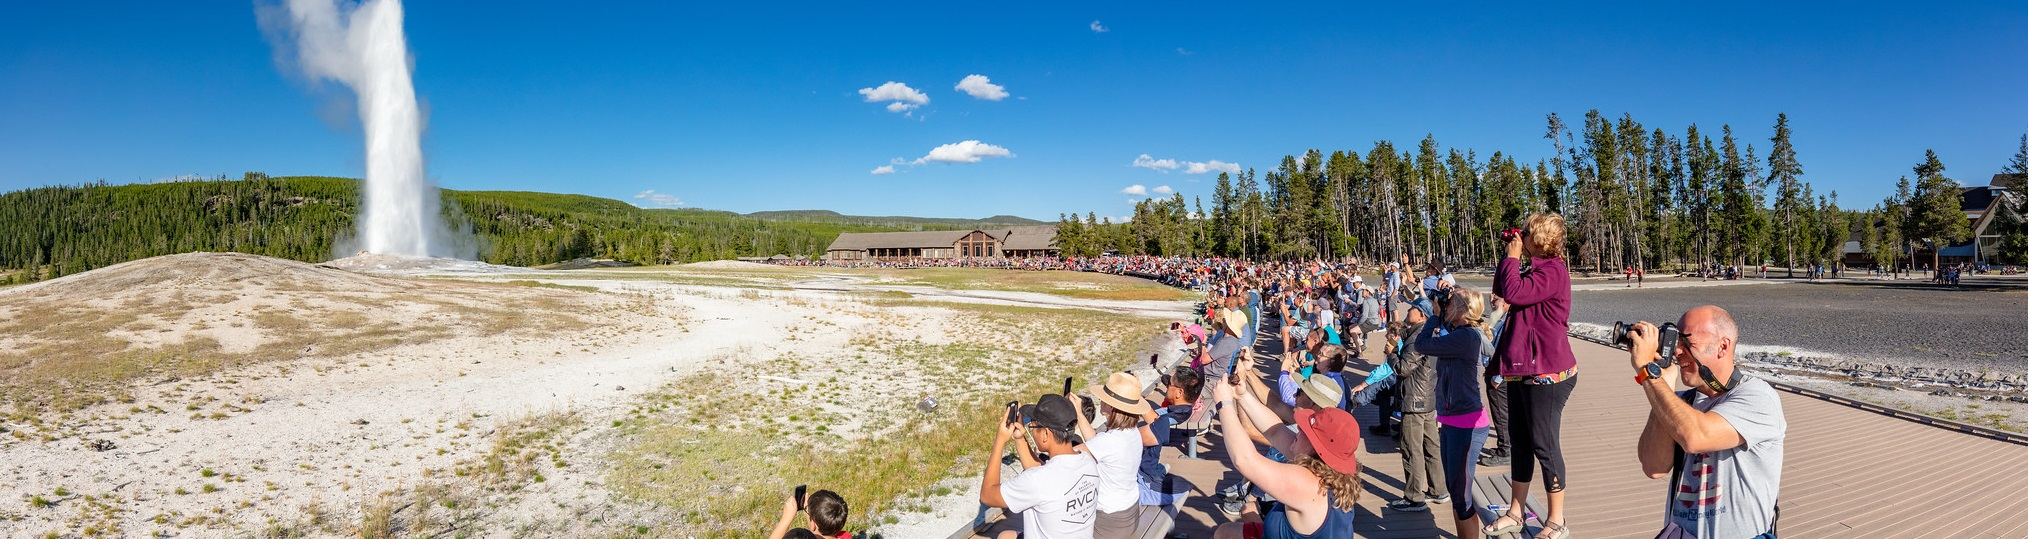 People watching an Old Faithful Eruption panorama